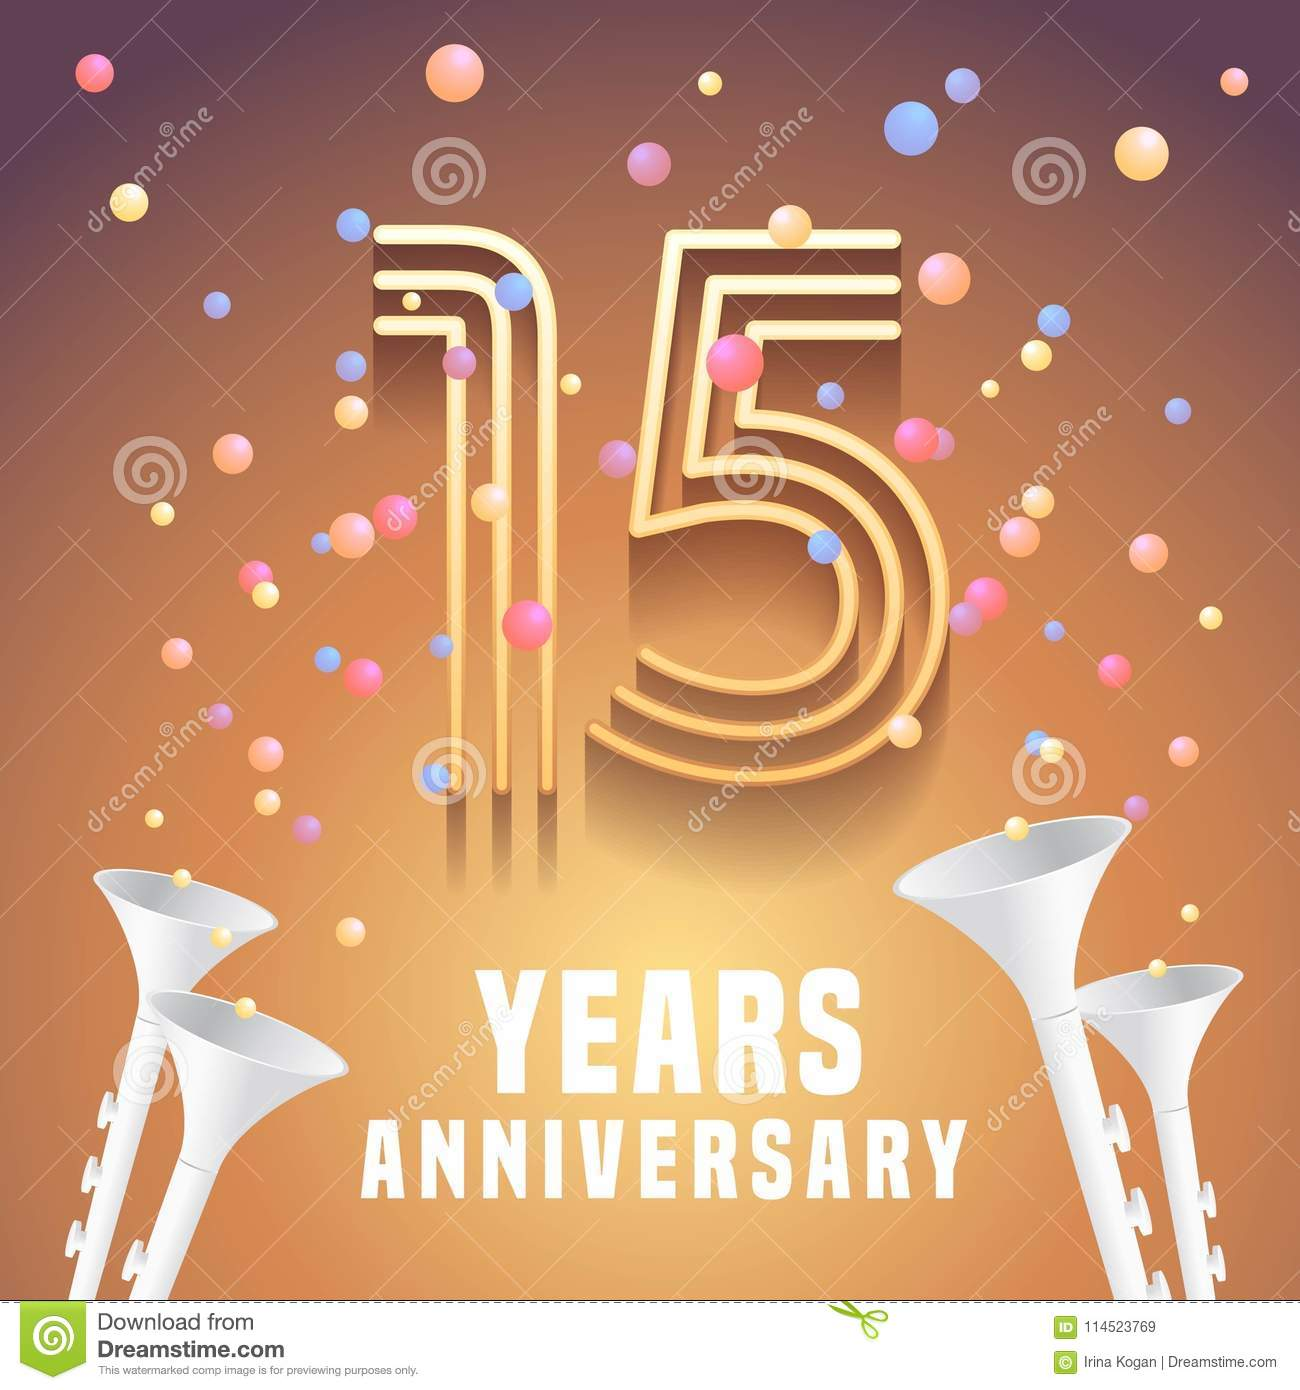 15 Years Anniversary Vector Icon Symbol Stock Vector Illustration